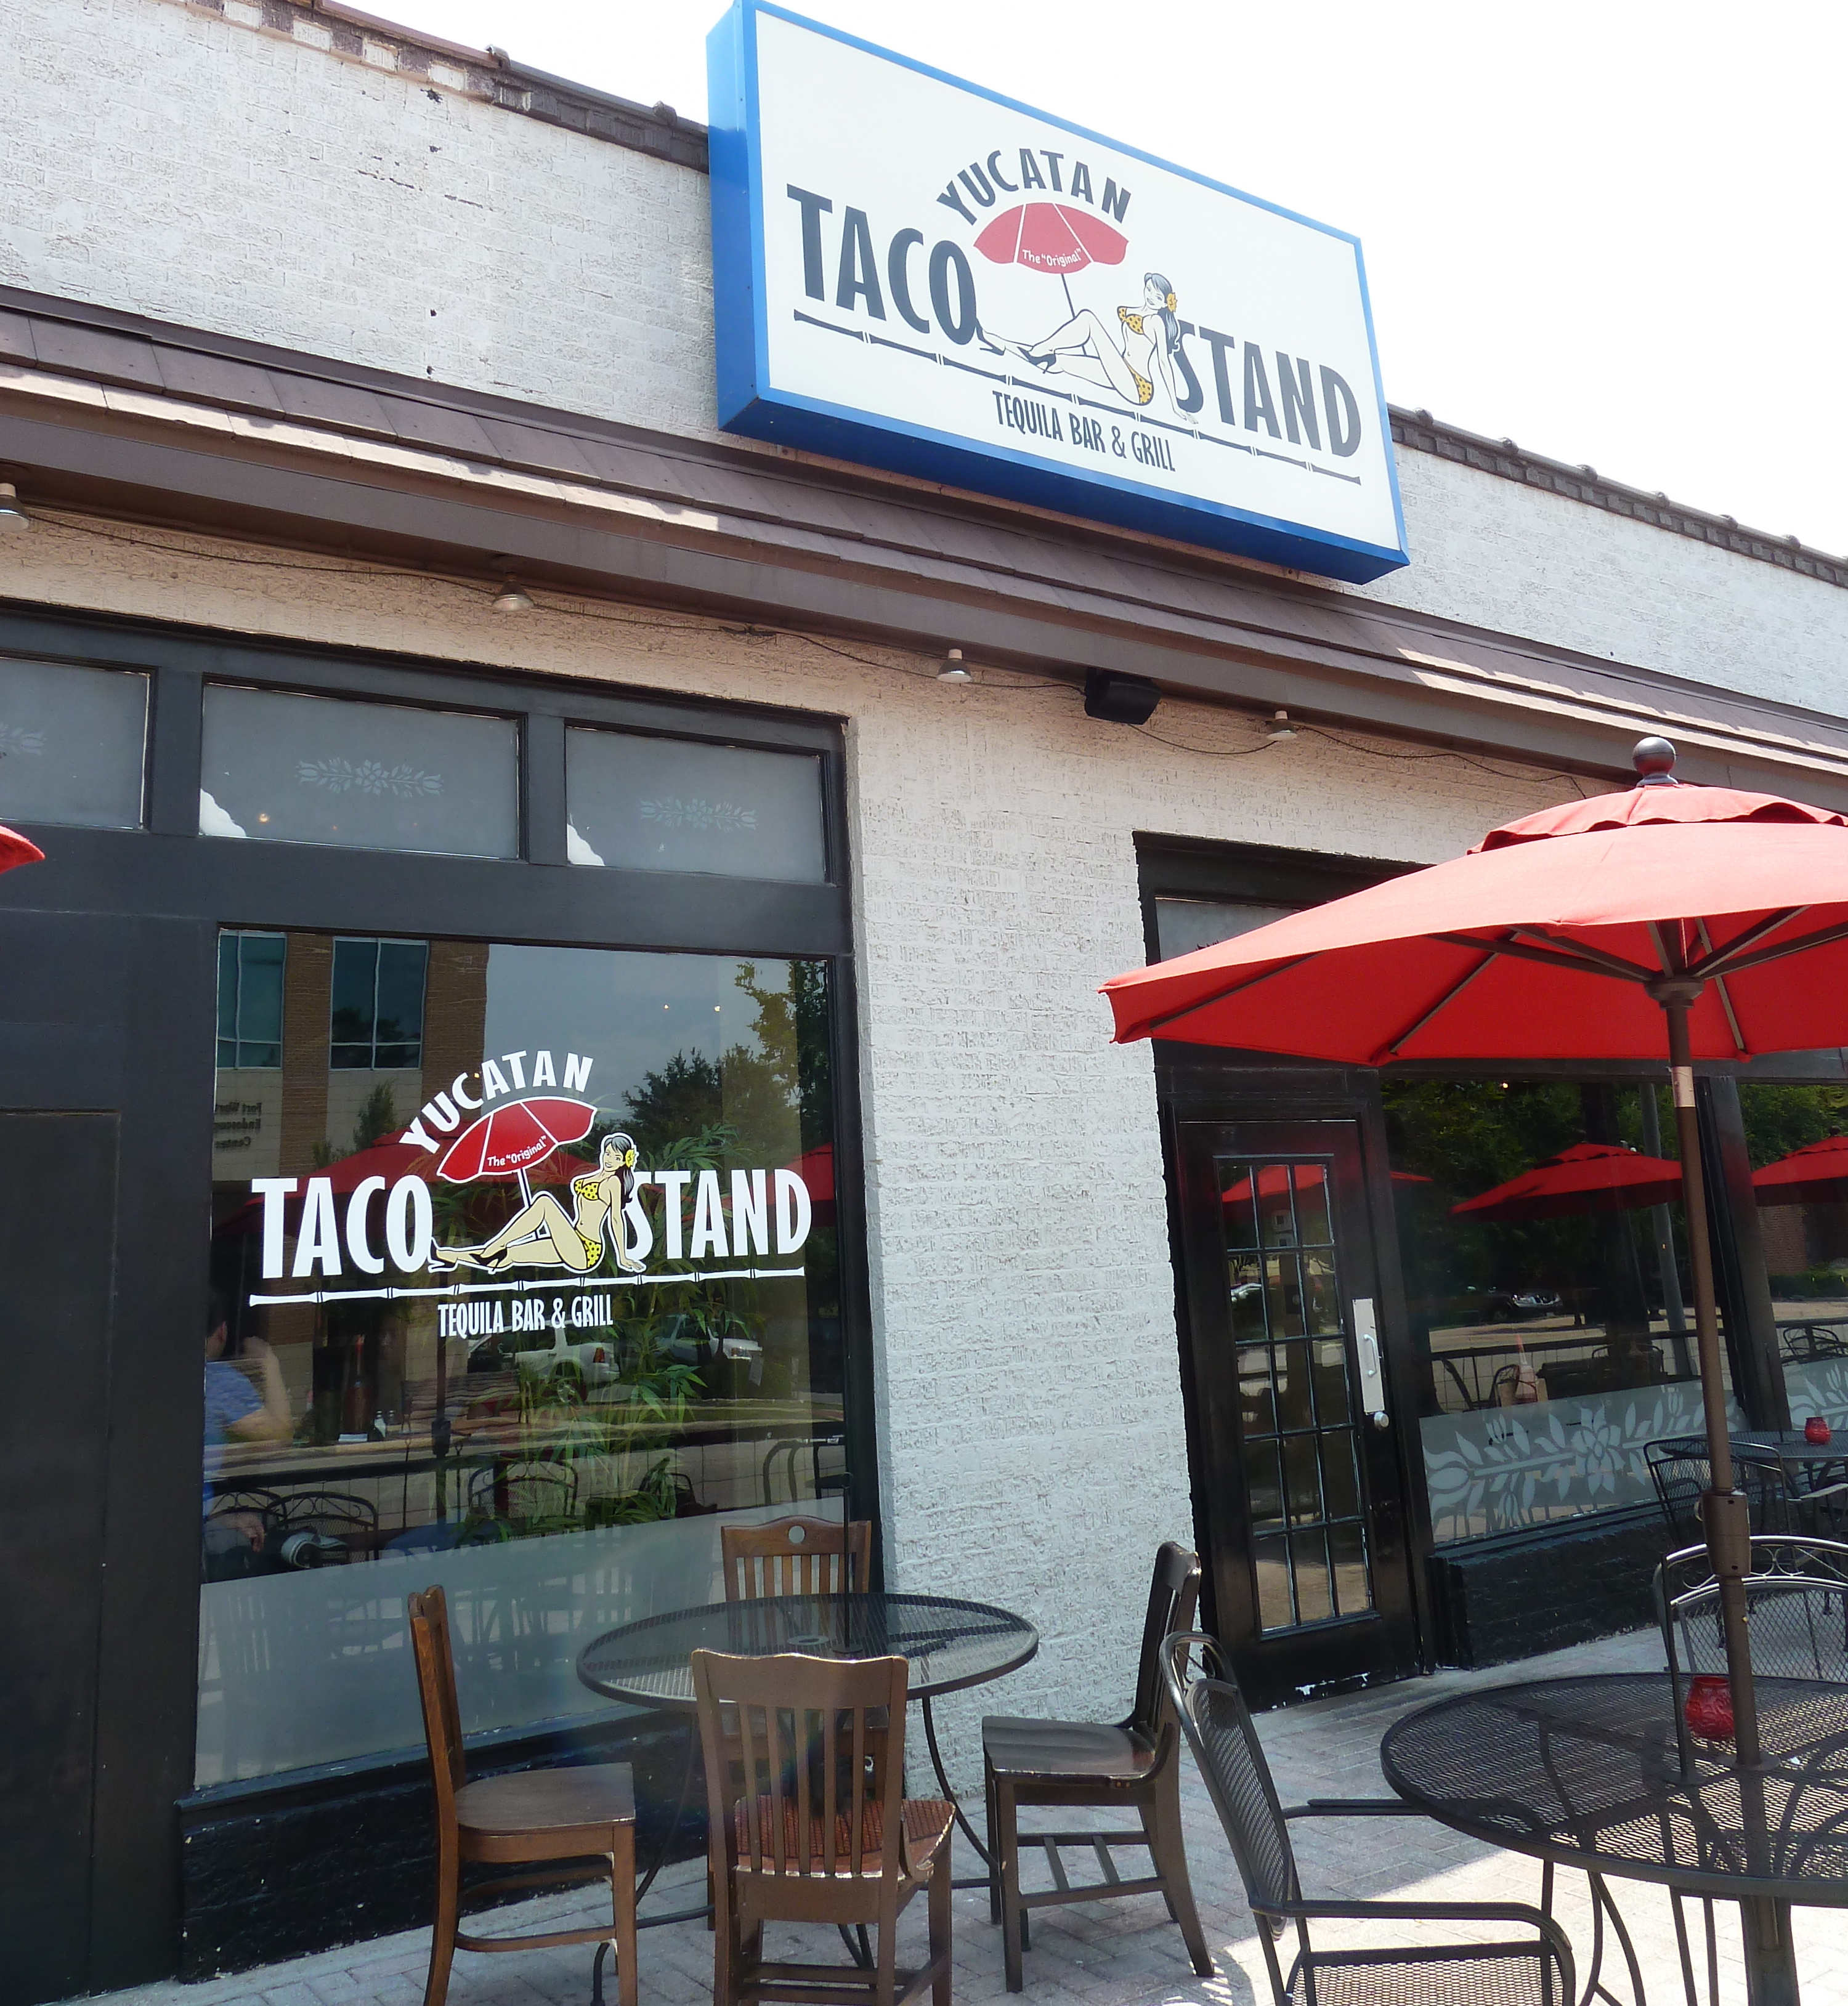 Yucatan taco stand and tequila bar